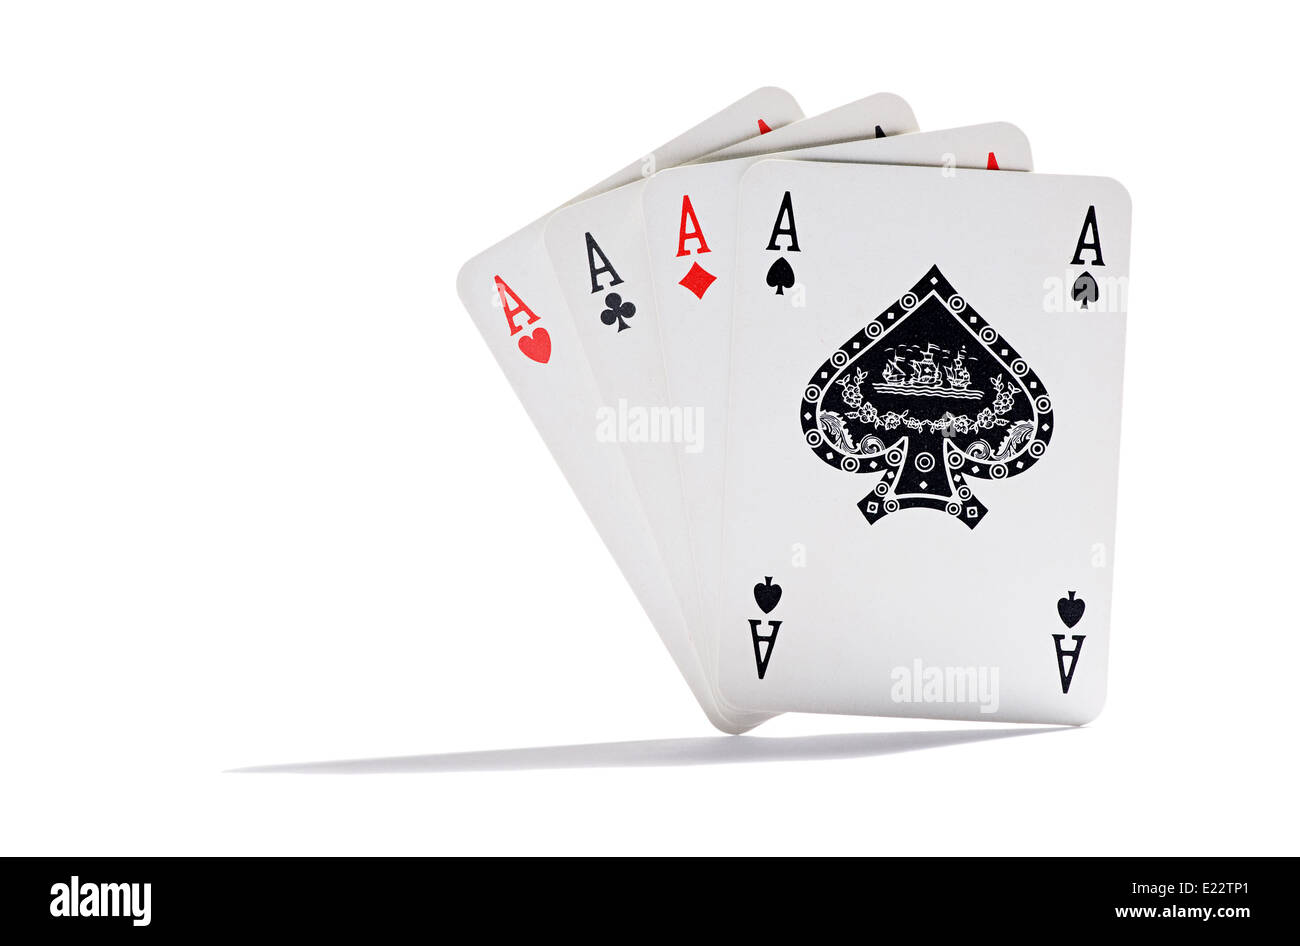 Four aces - Stock Image